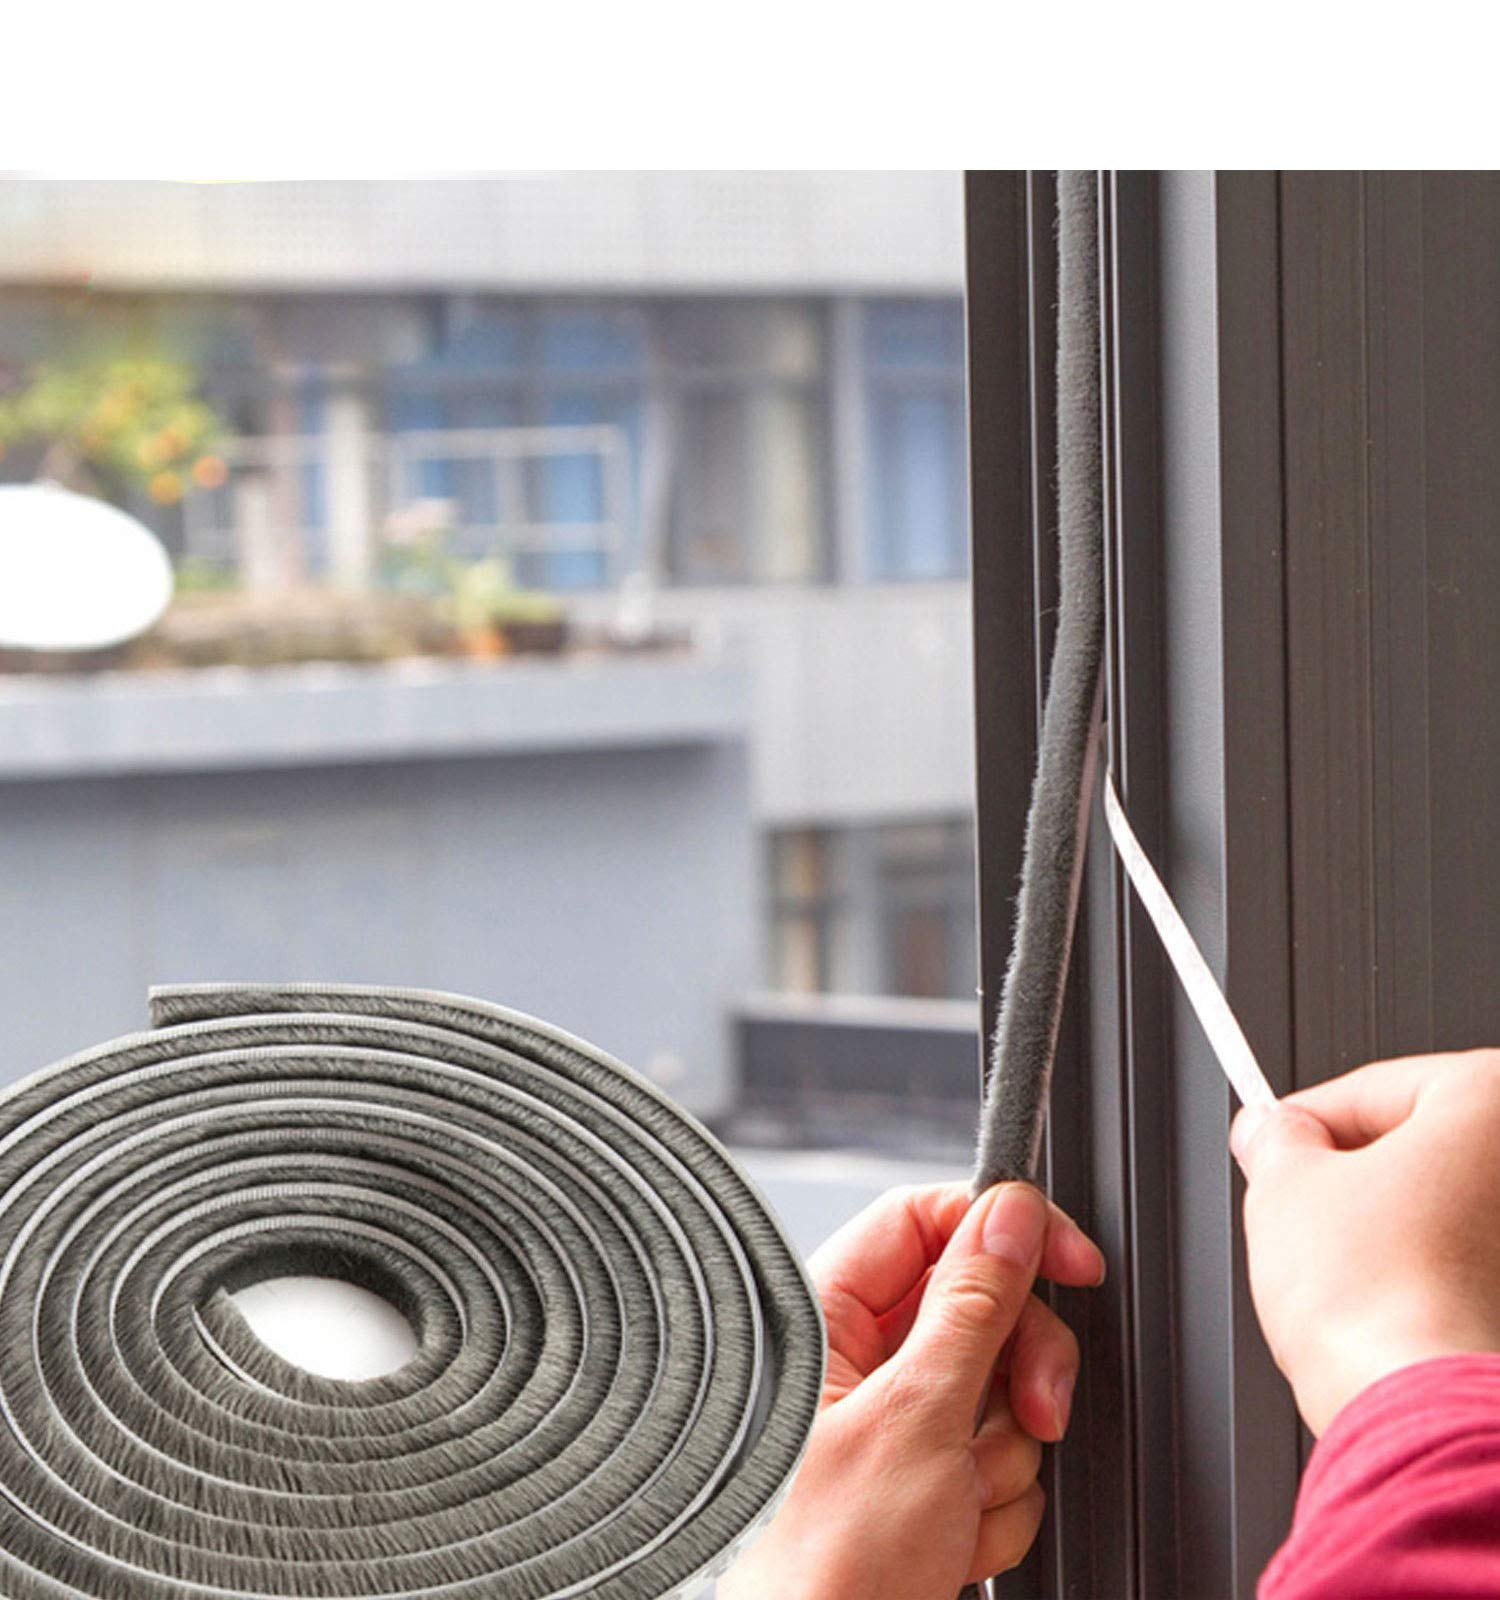 SRHOME 32.8 ft Self Adhesive Seal Strip Weatherstrip for Window,Door,Wardrobe,Car,Perfect to Windproof Shelter from The Wind,Dustproof,Pest Control,Soundproof Sound Deadener (0.35'' 0.6'')